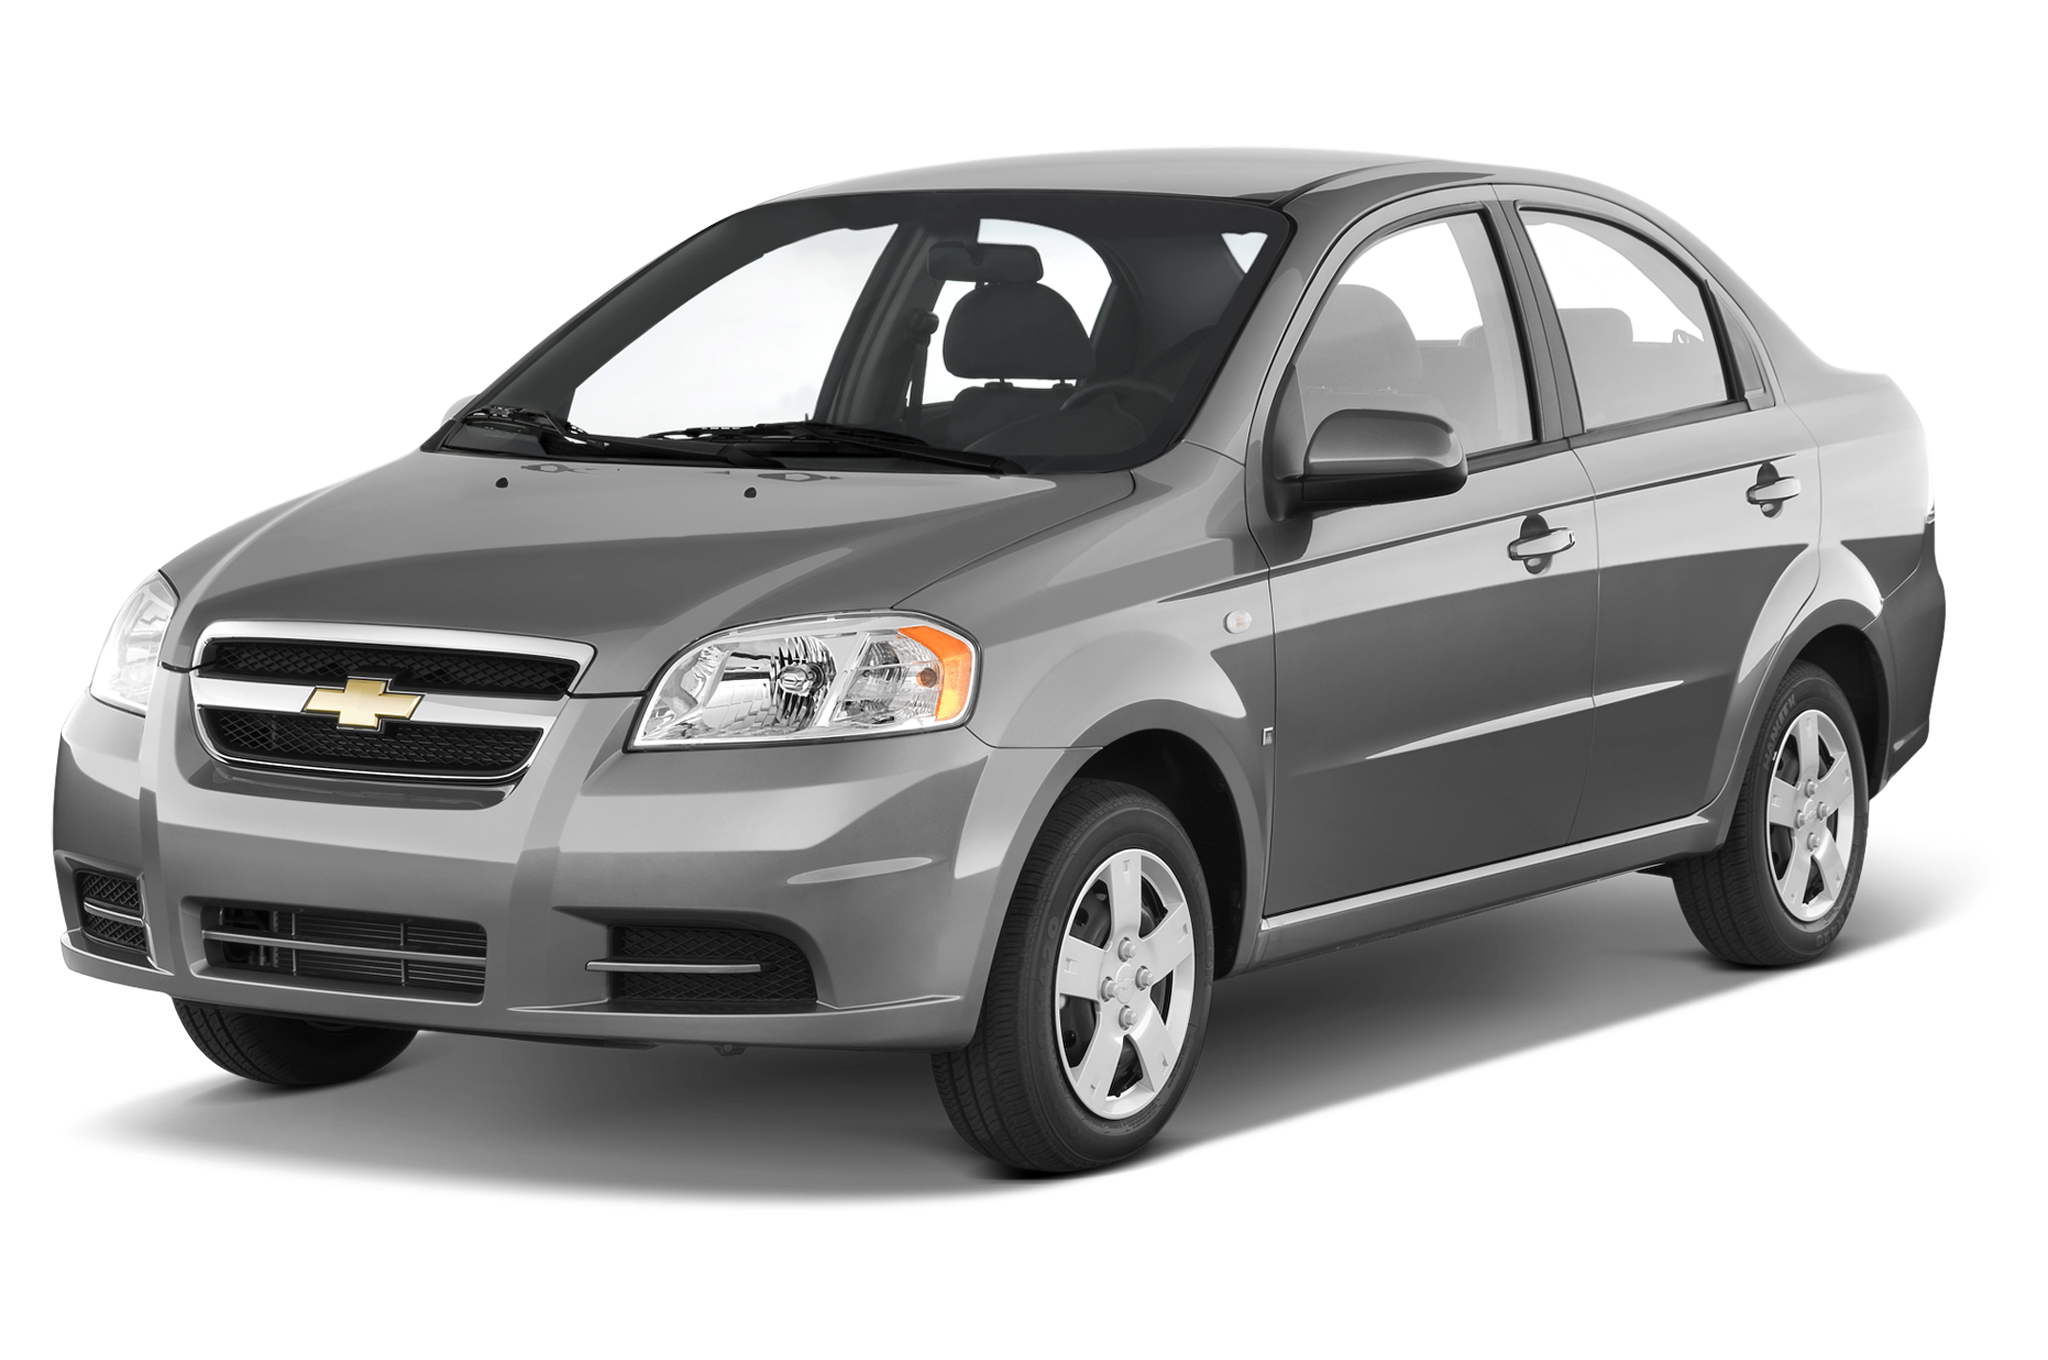 Chevrolet Aveo PNG Image